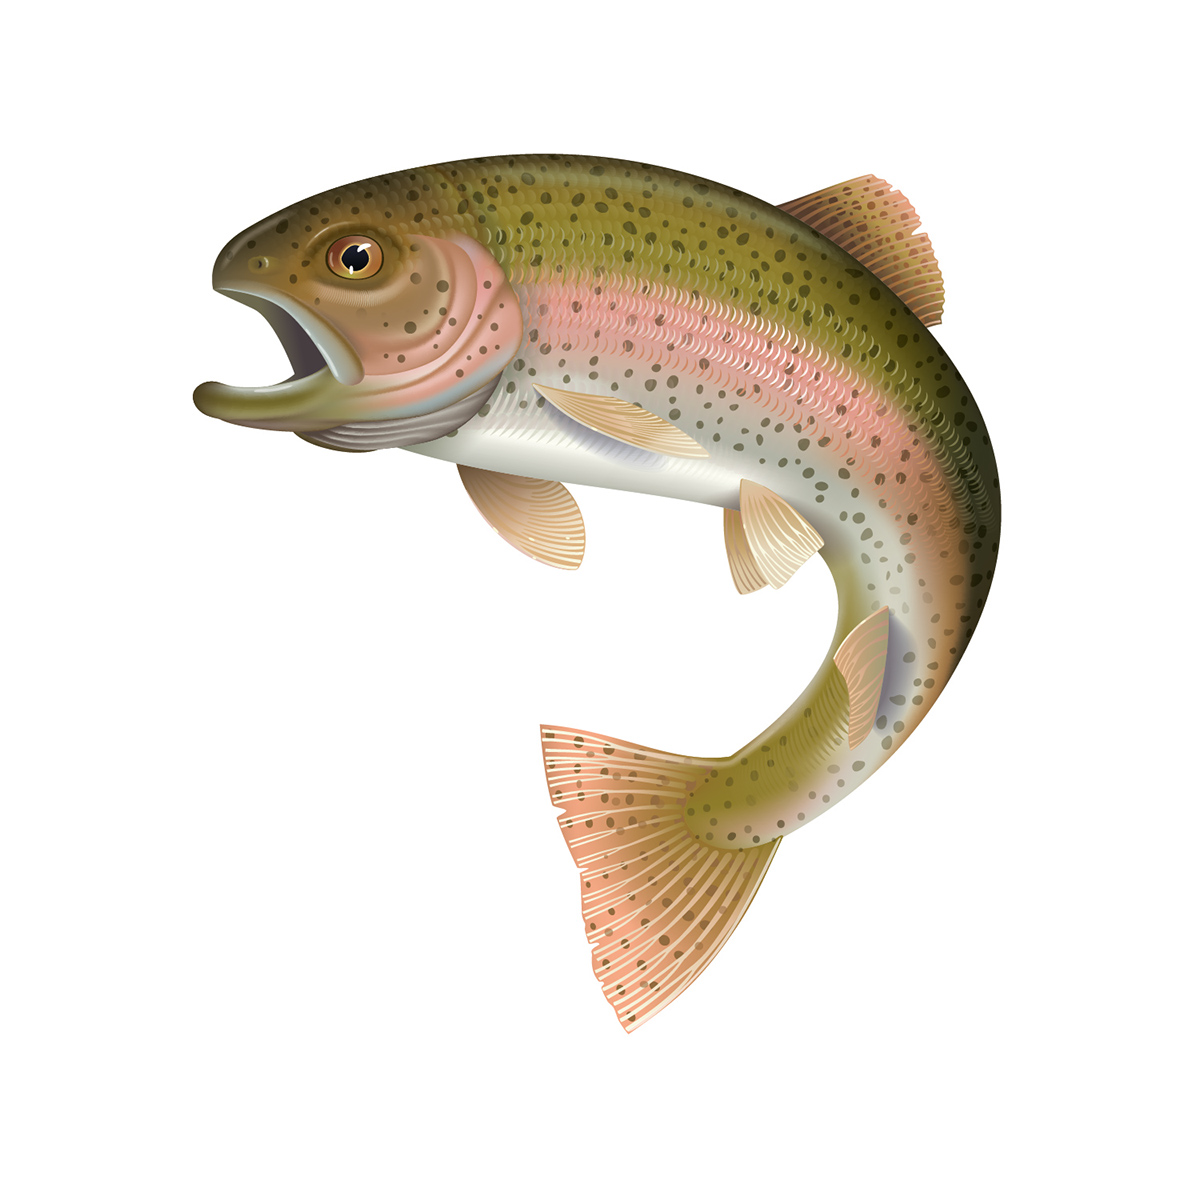 1200x1200 Detailed Vector Illustration Of A Rainbow Trout On Behance